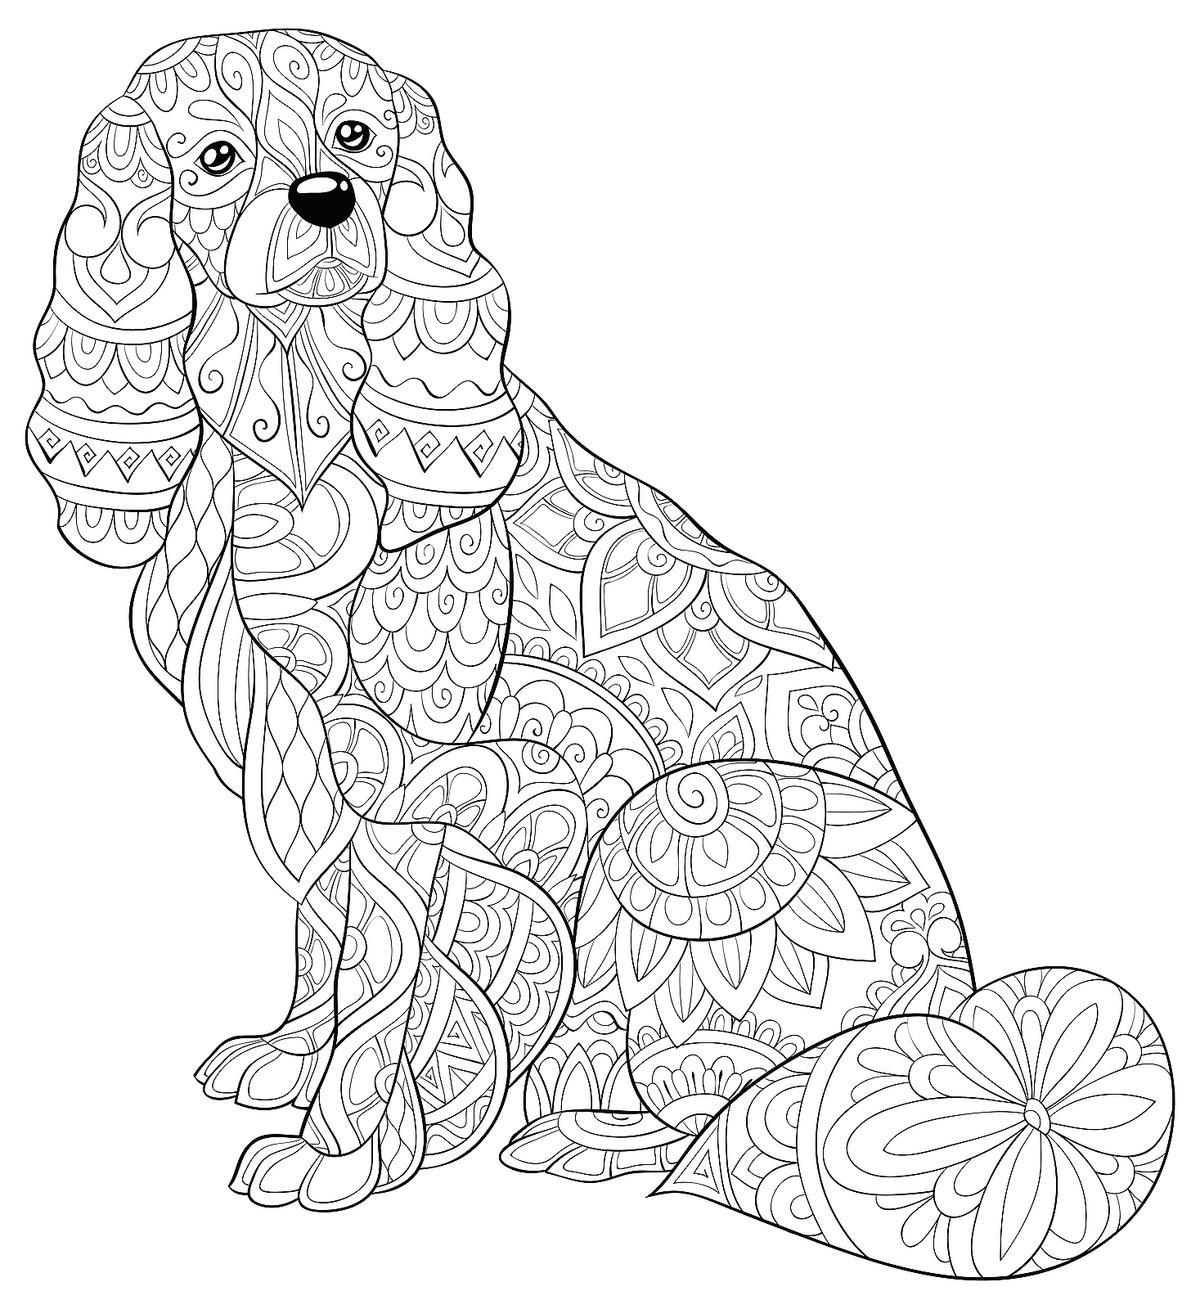 dogs colouring dog coloring pages printable coloring pages of dogs for colouring dogs 1 1